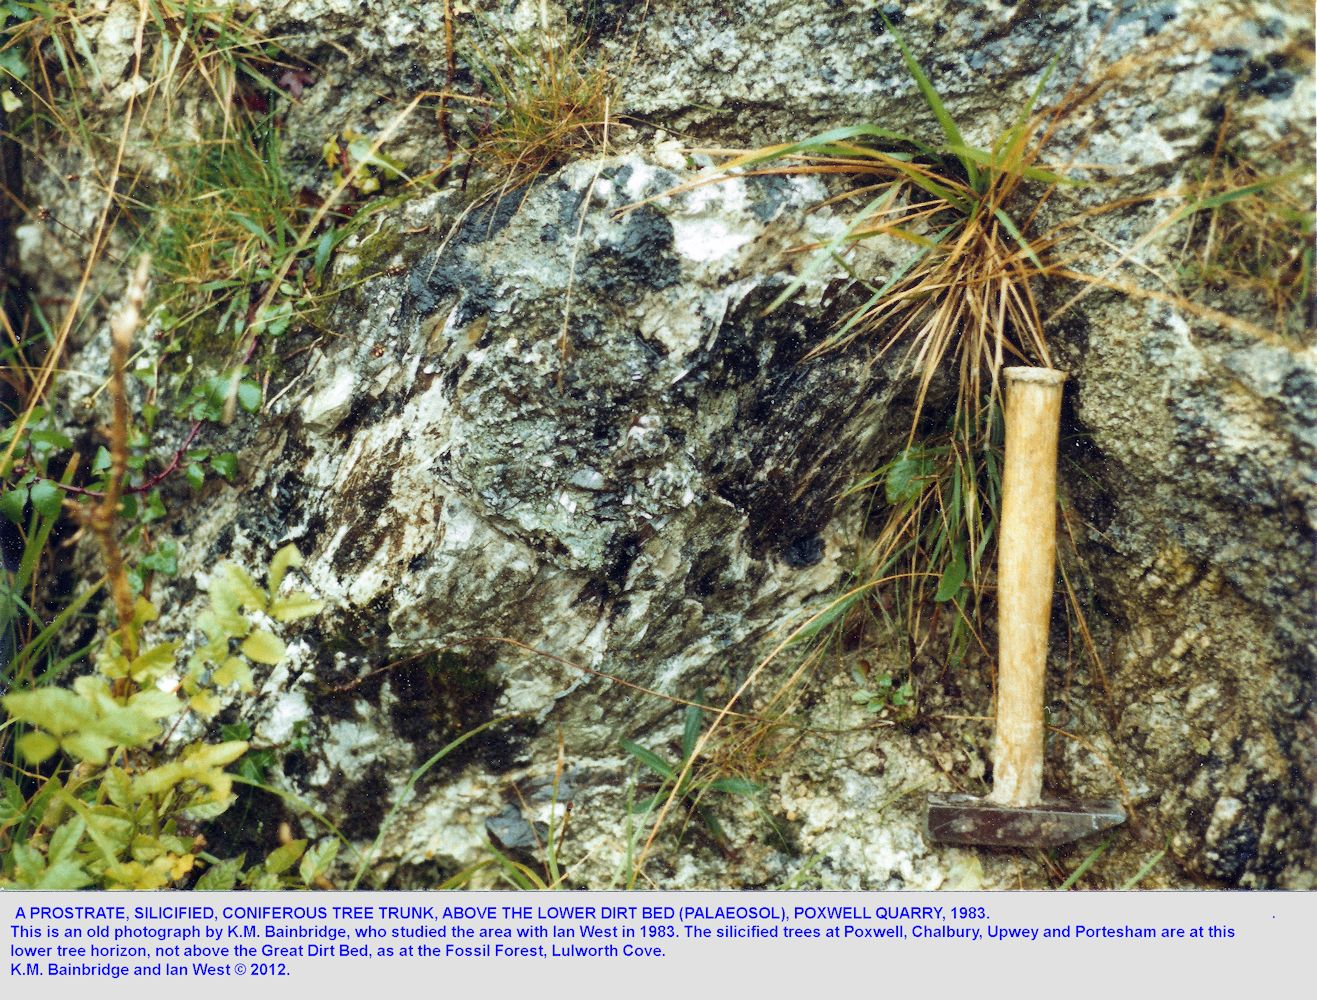 A prostate, silificied tree trunk above the Lower Dirt Bed, at Poxwell Quarry, Dorset, after Bainbridge, 1983